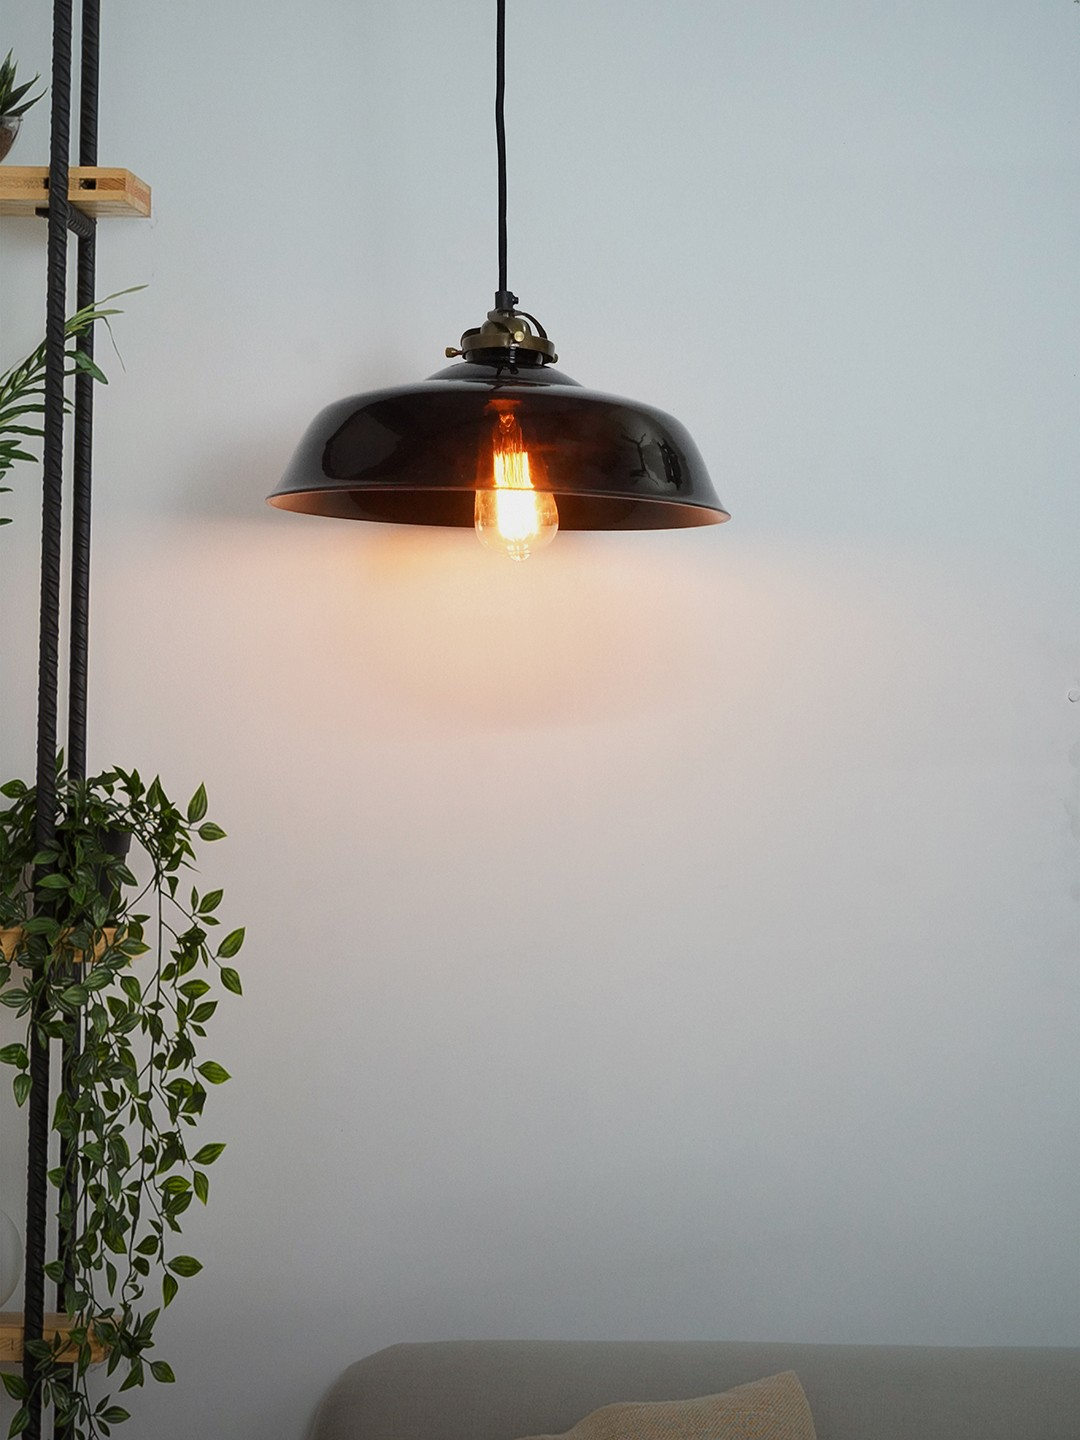 Classic American Smoked Glass Industrial Ceiling Pendant Light